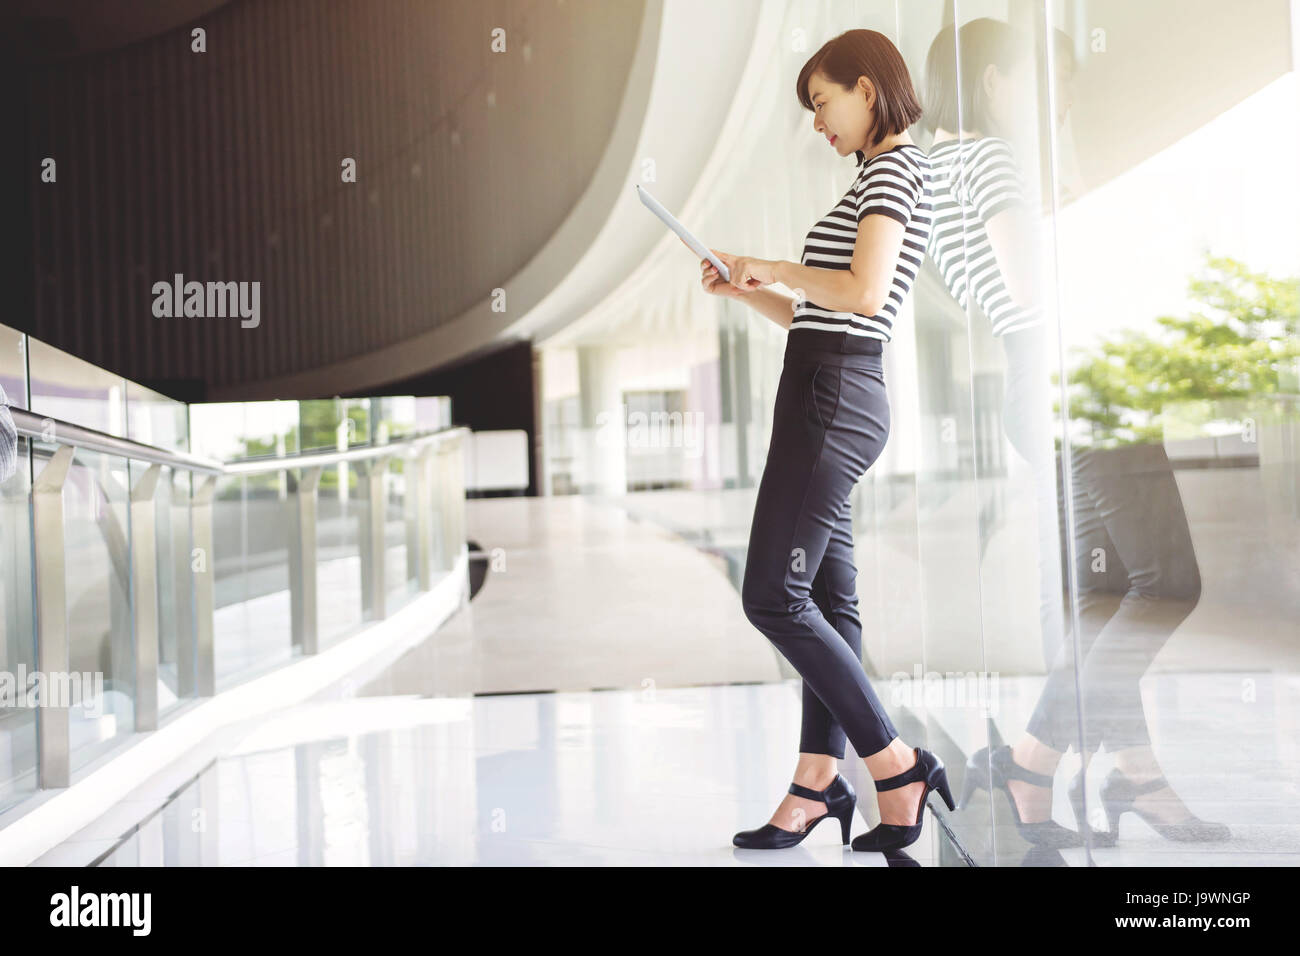 Business working woman reading data in digital tablet inside building, Social communicate technology in business - Stock Image